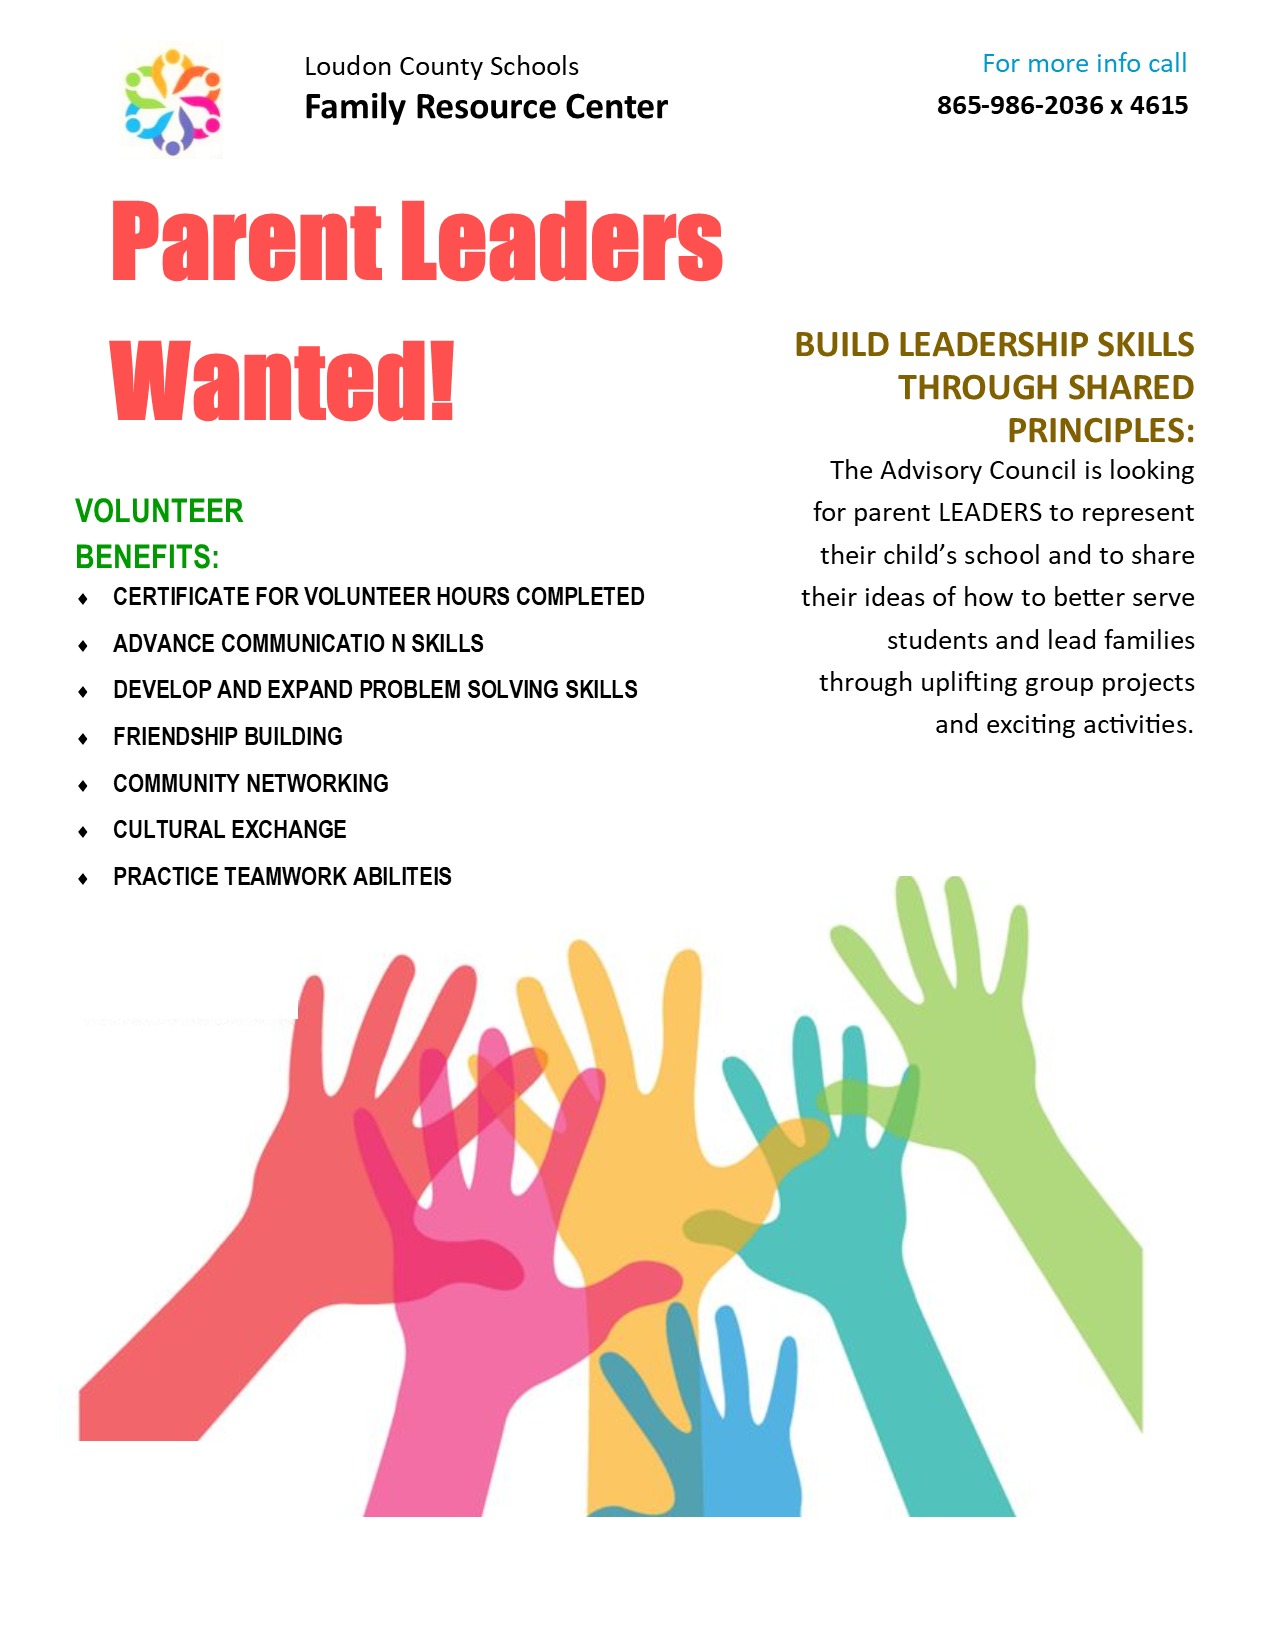 Parents Wanted